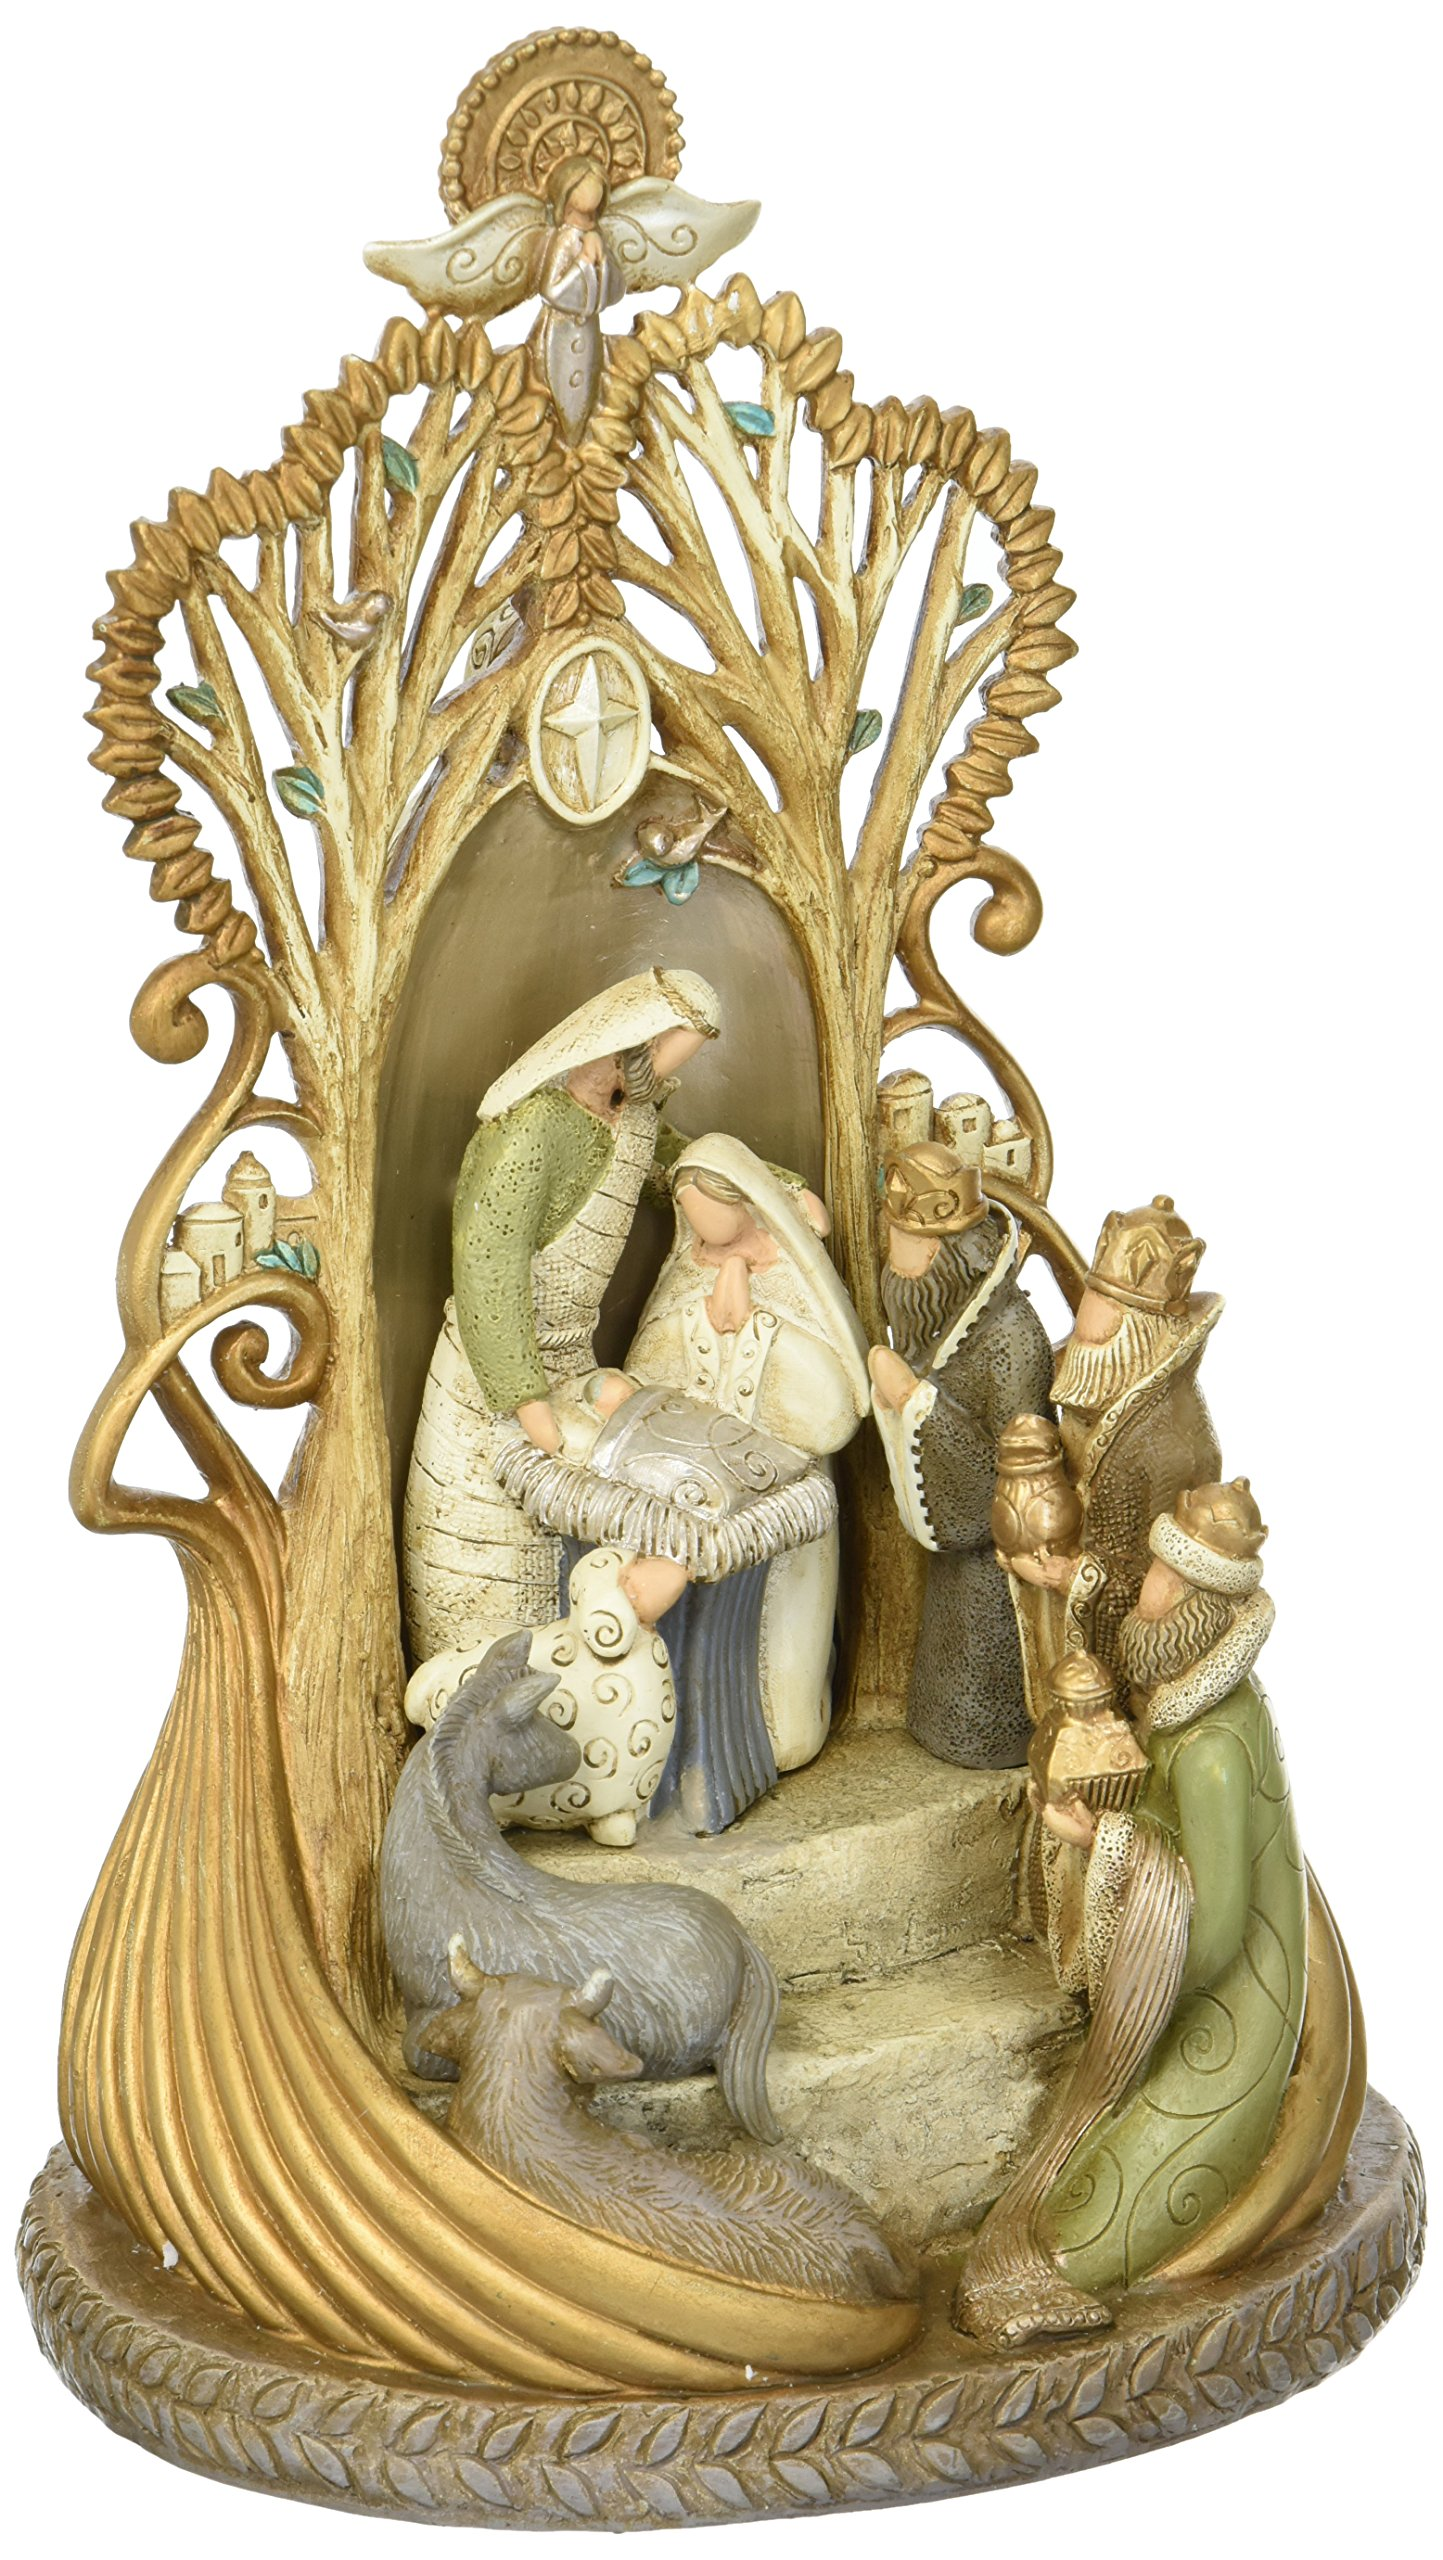 Enesco Legacy of Love From Masterpiece Nativity Figurine 11.42 In by Enesco (Image #1)